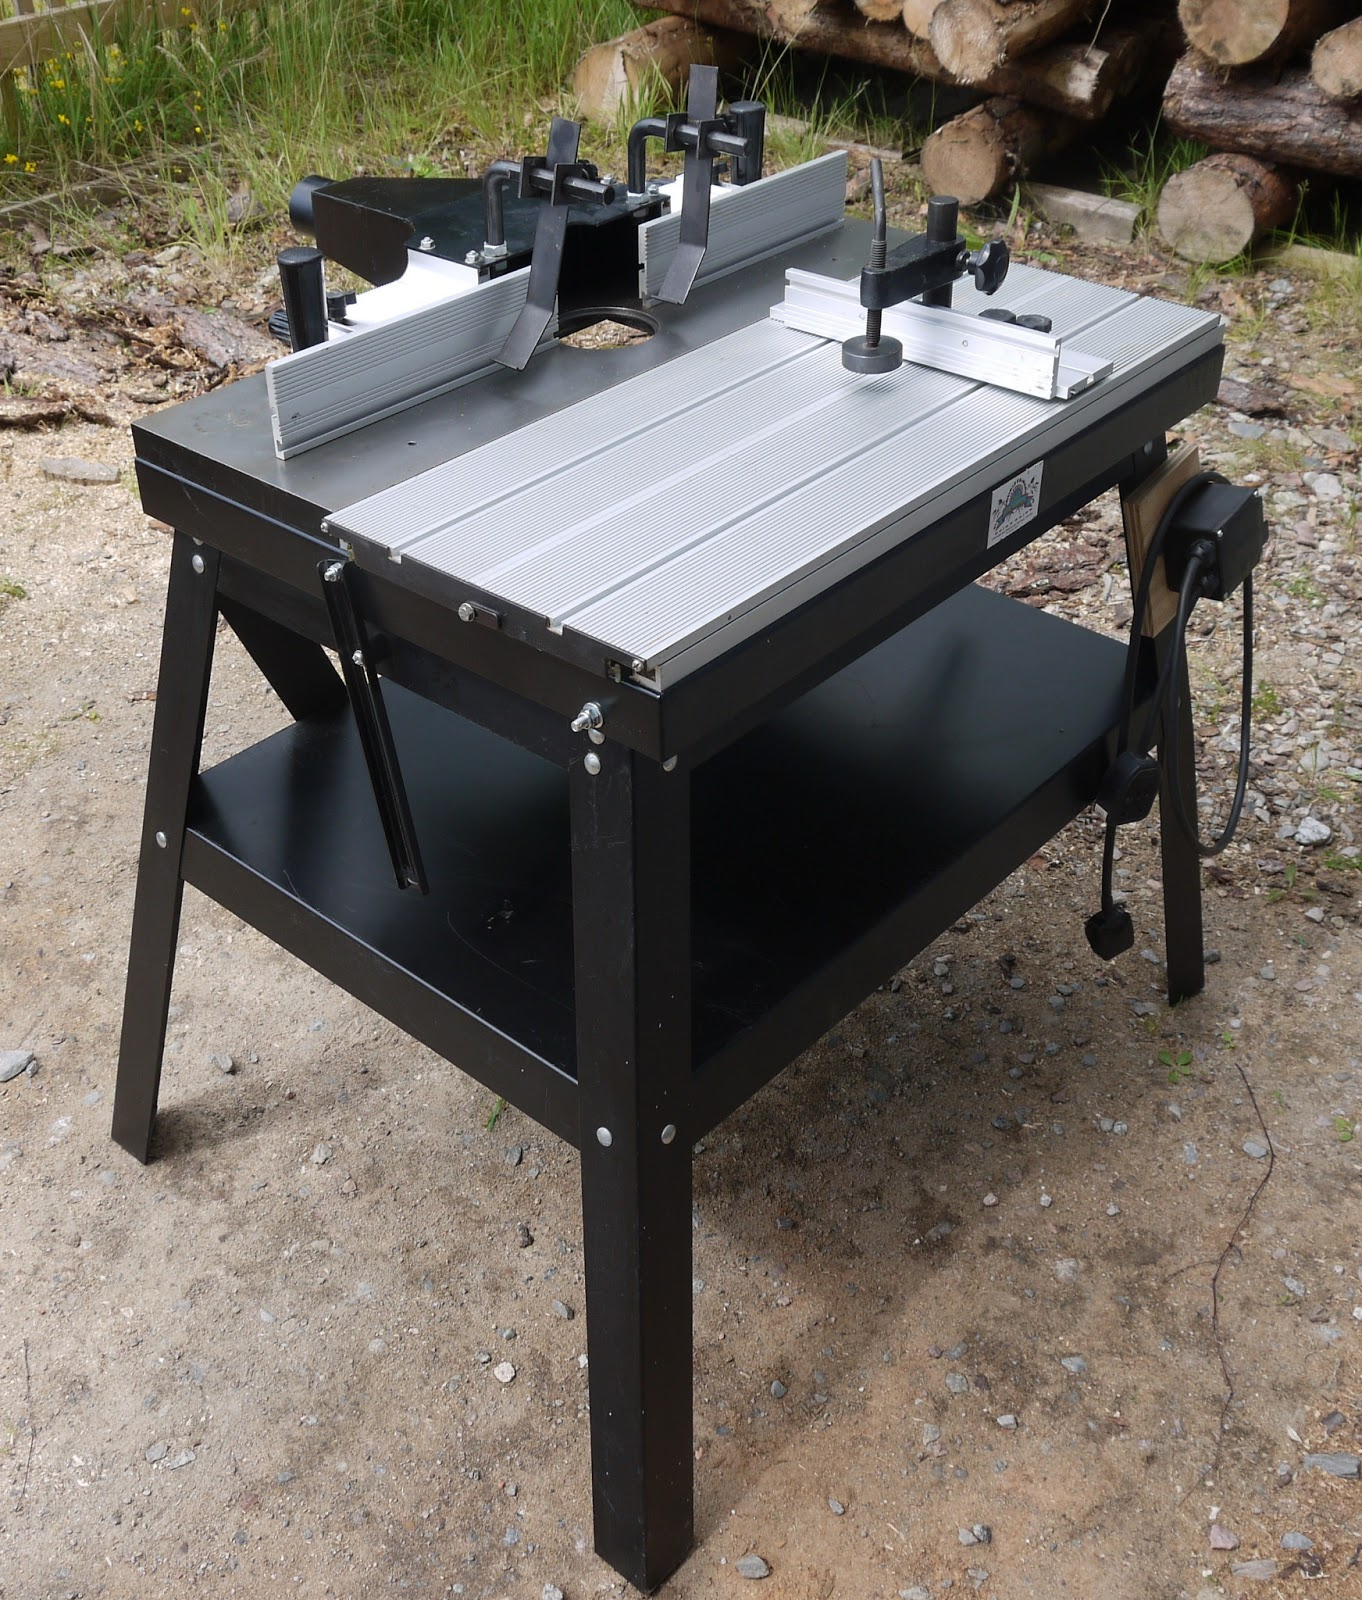 Bench Tables For Sale: Record Router Table: For Sale: Record Router Table With